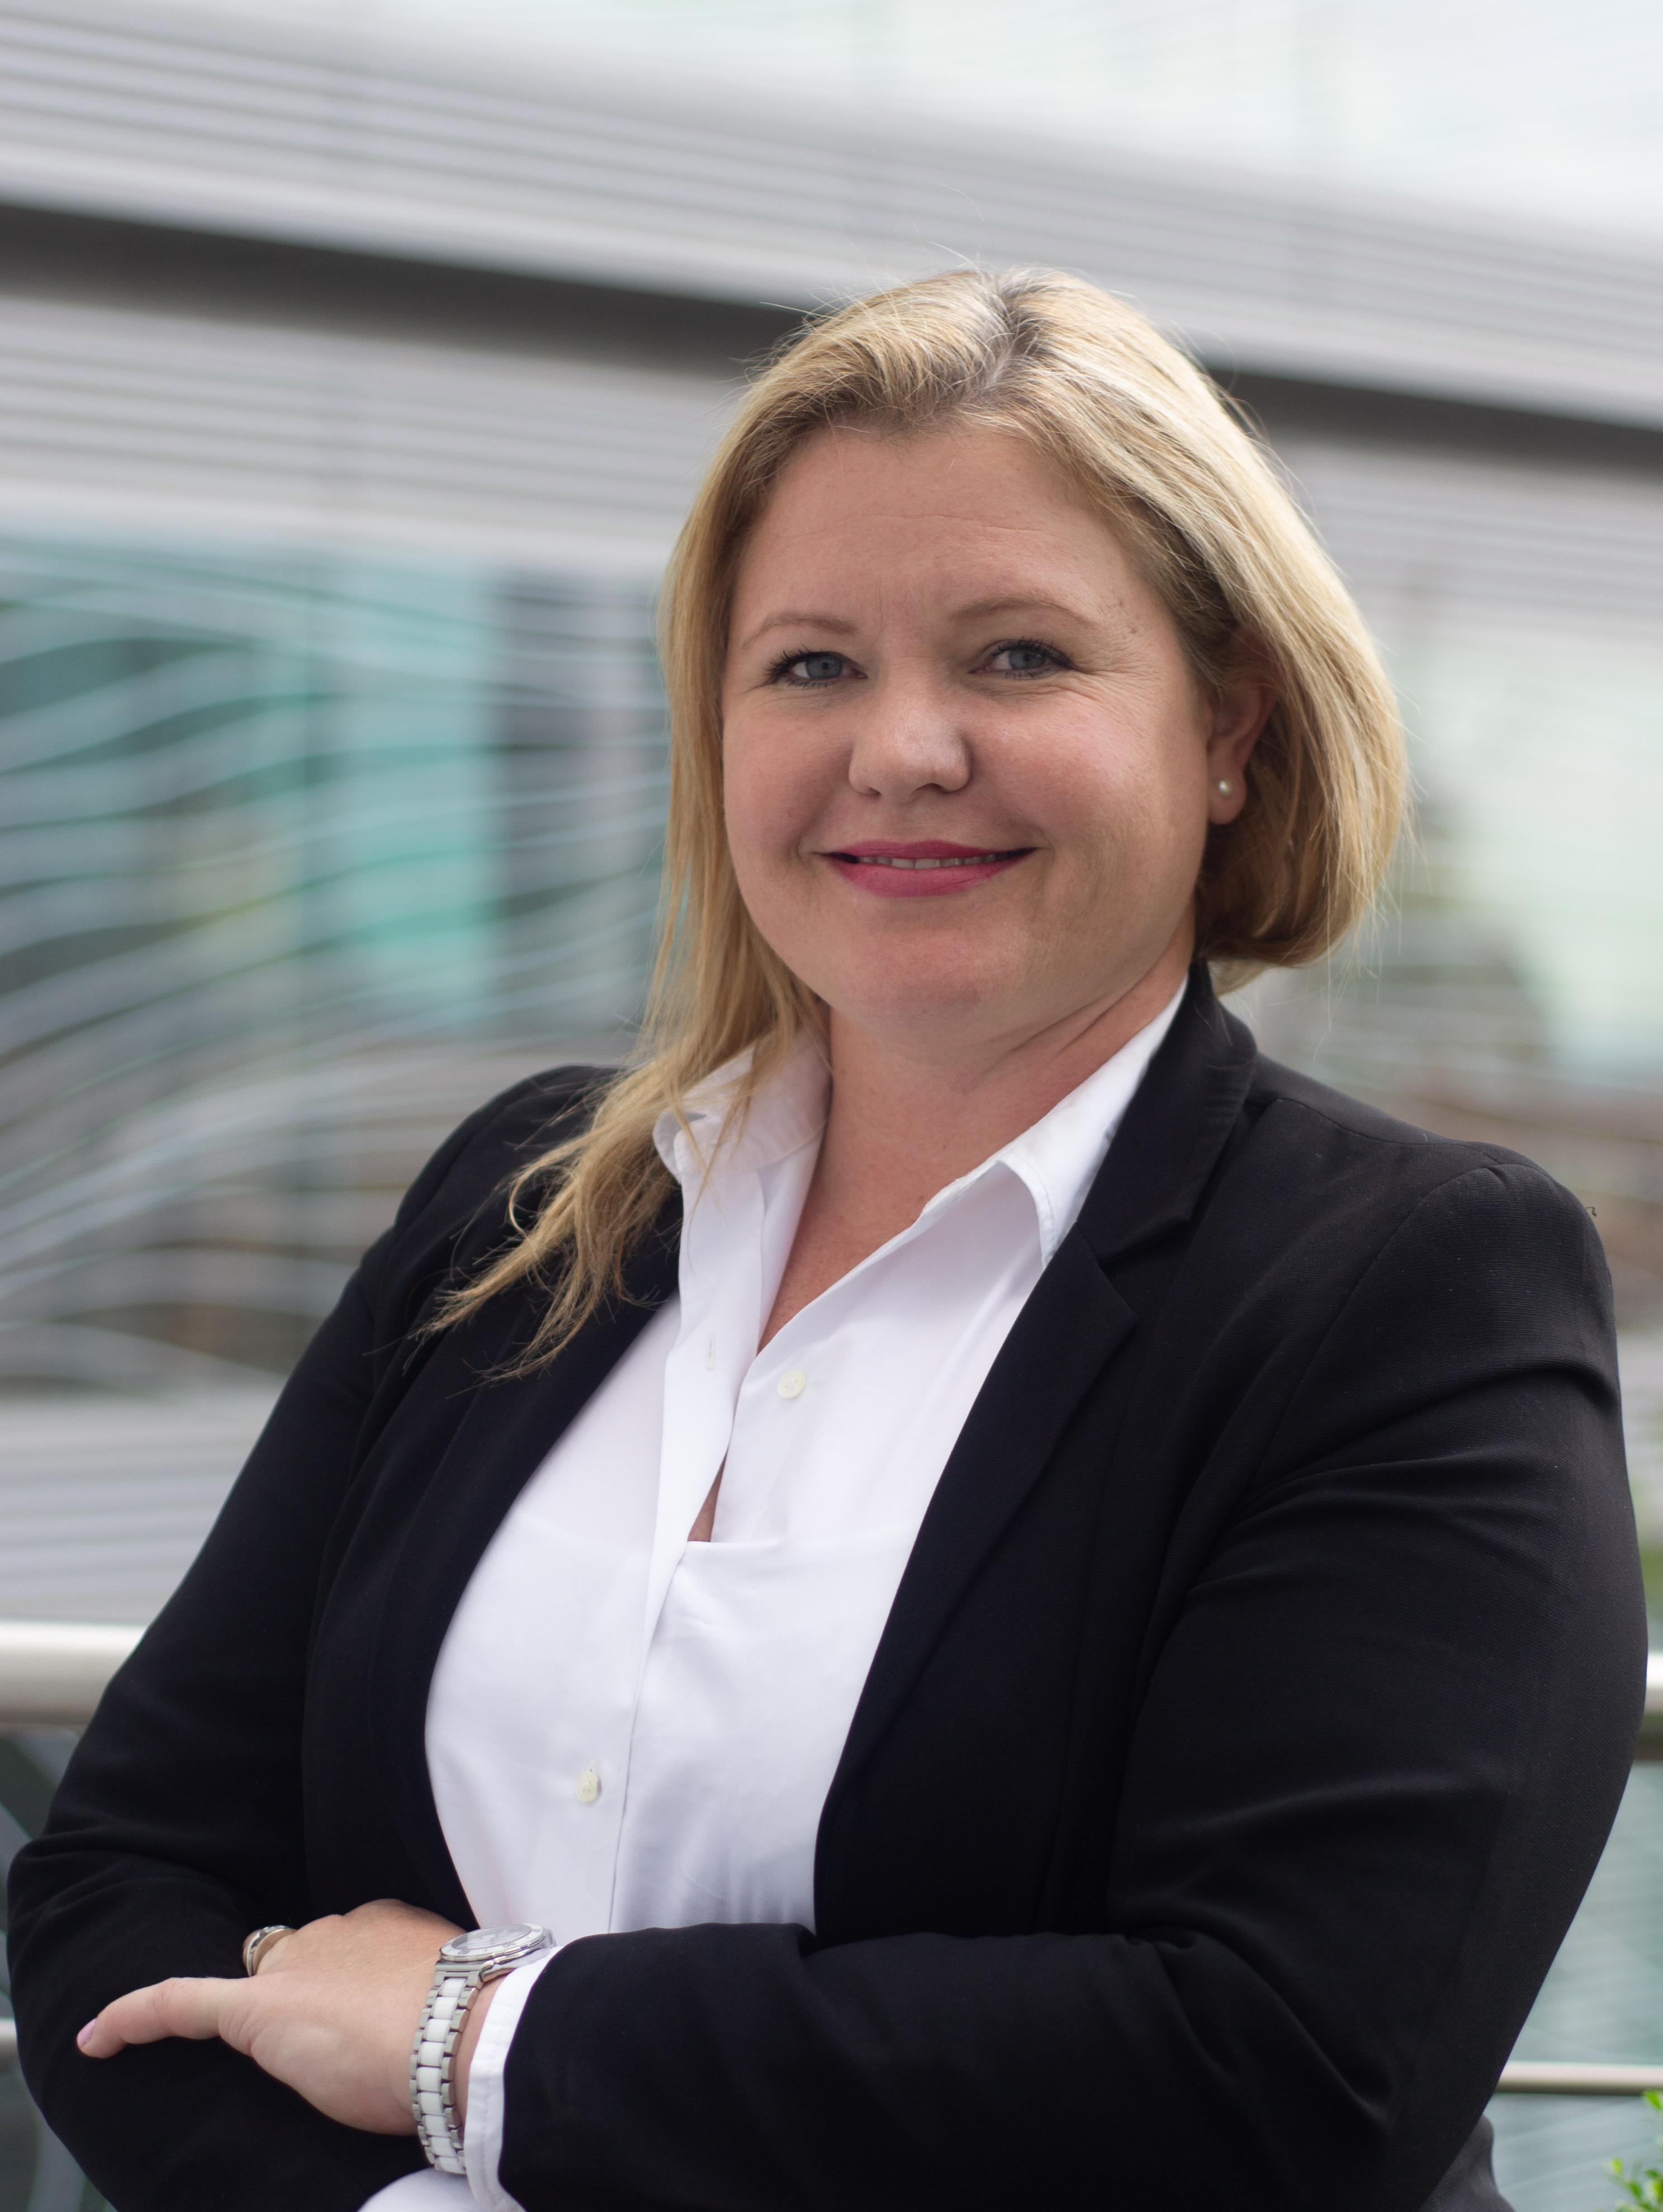 Interview with Janine West, Data Privacy Officer, Investec